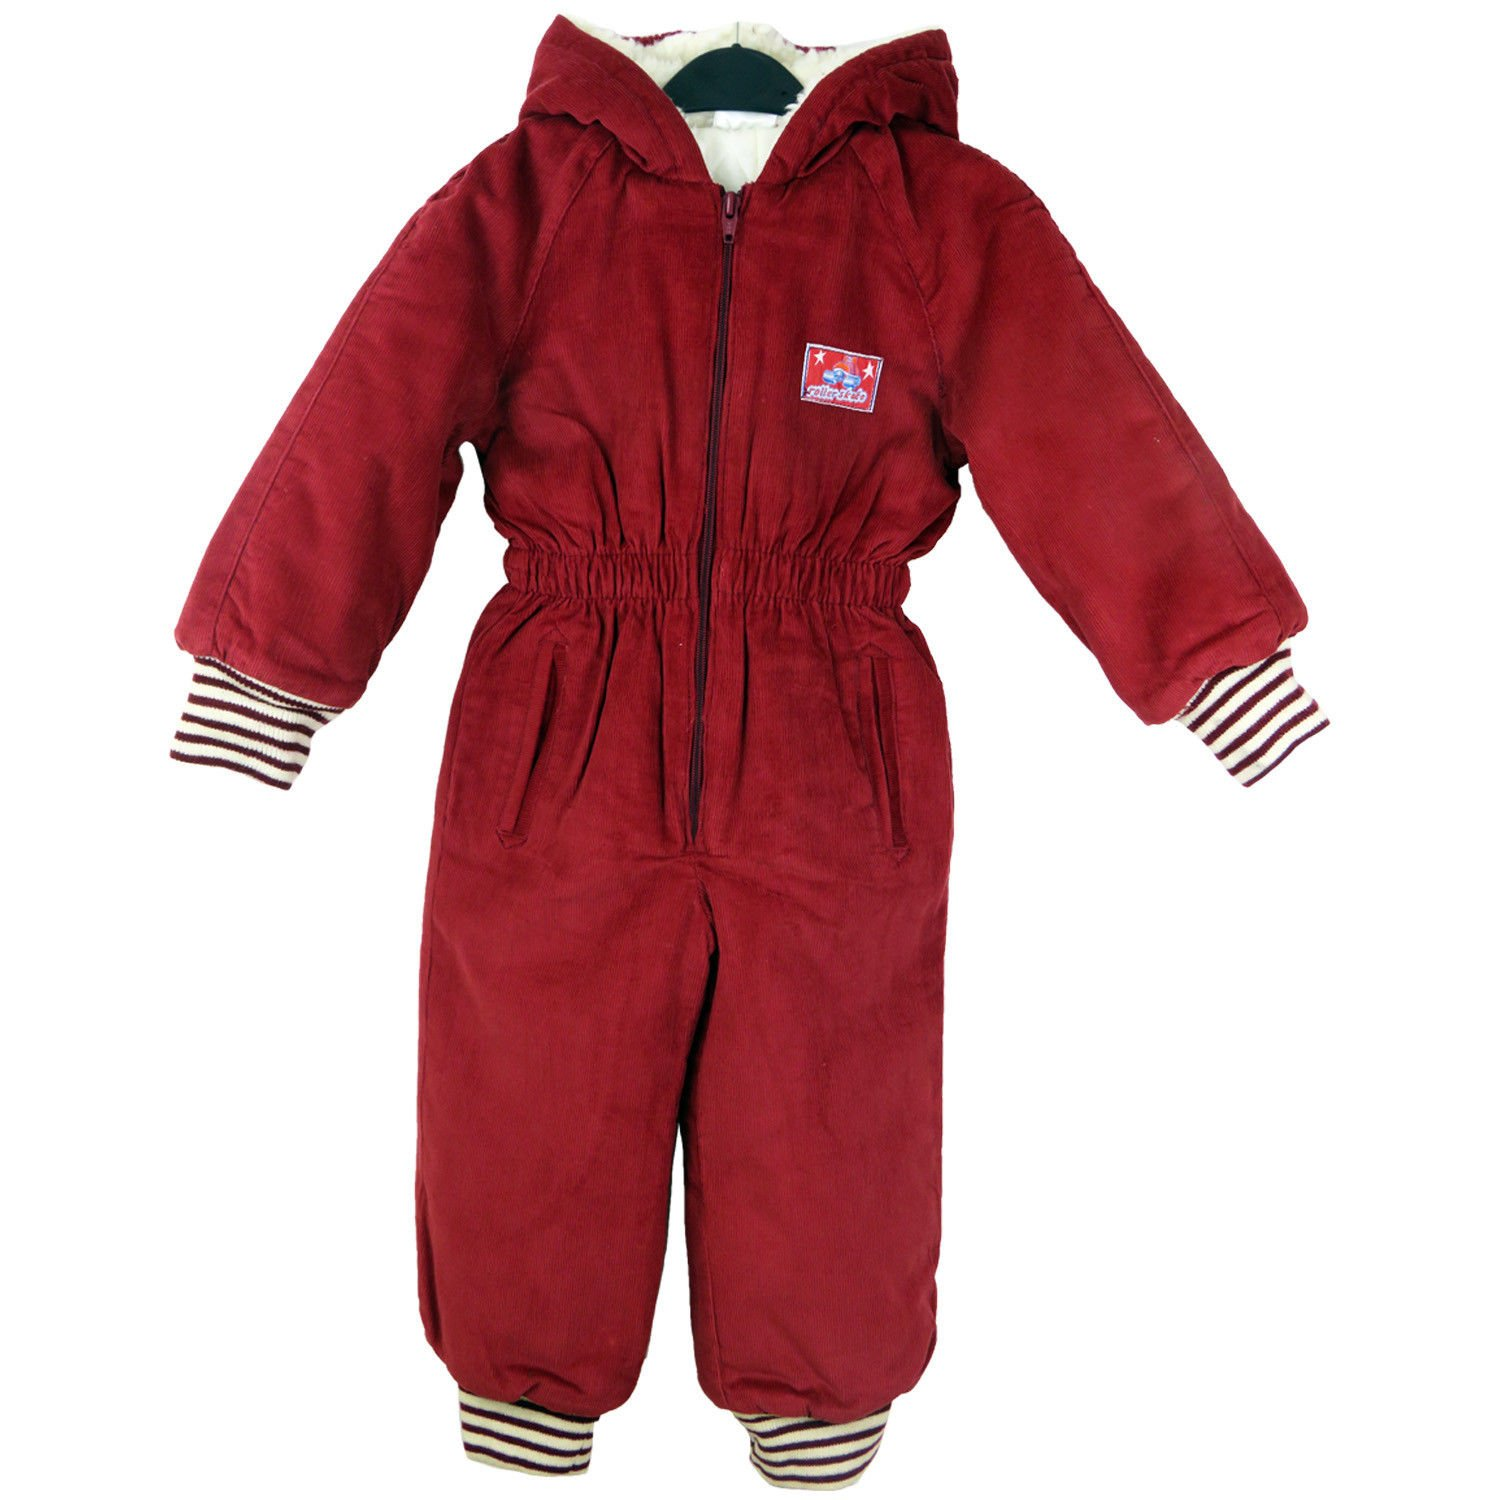 Kids Padded All-In-One Suit Snowsuit Childs Childrens Boys Girls 3-4Years